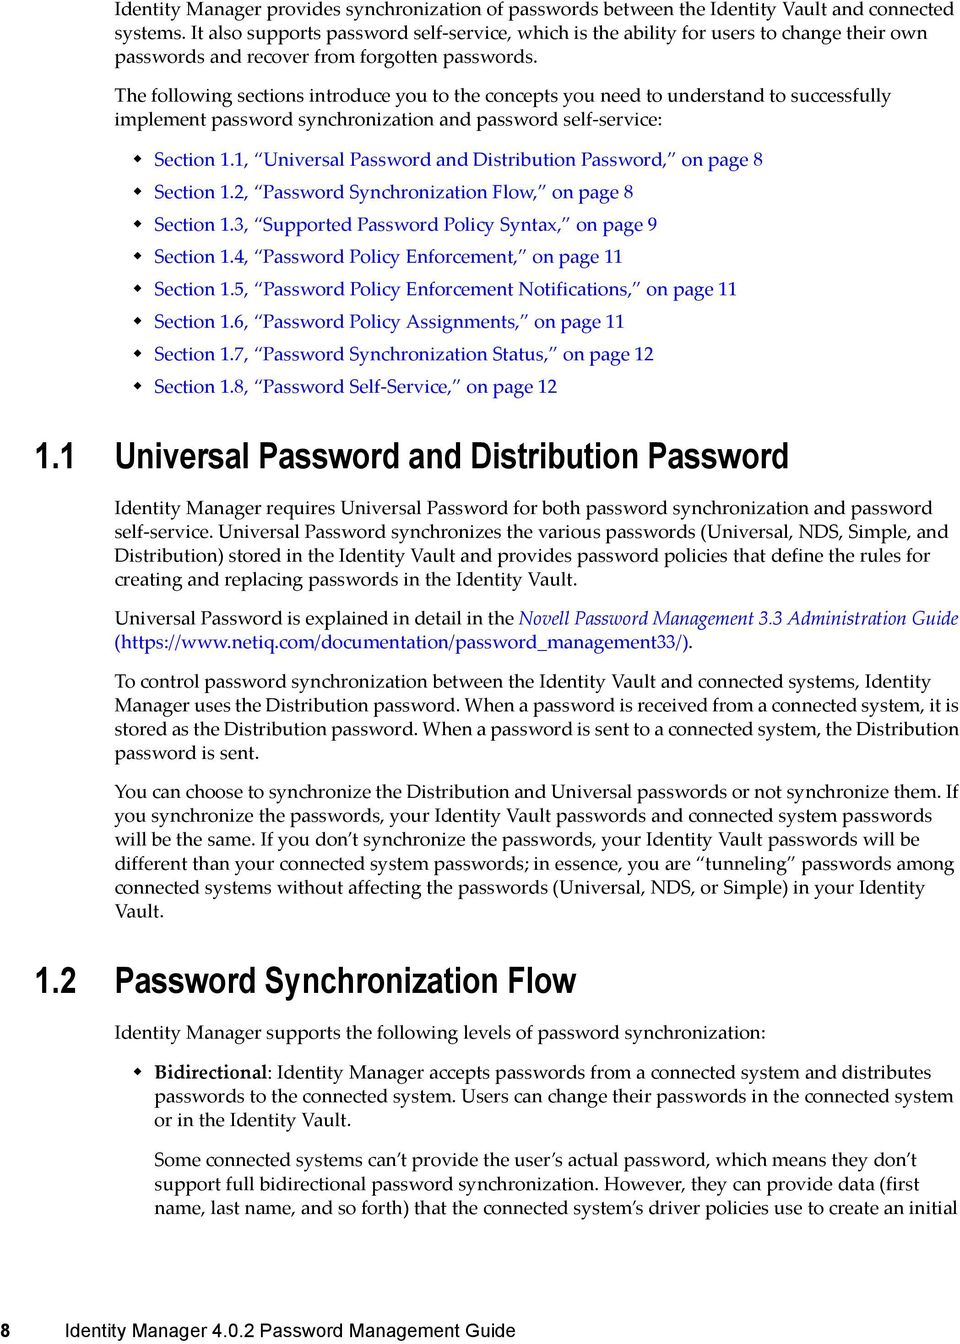 The following sections introduce you to the concepts you need to understand to successfully implement password synchronization and password self-service: Section 1.